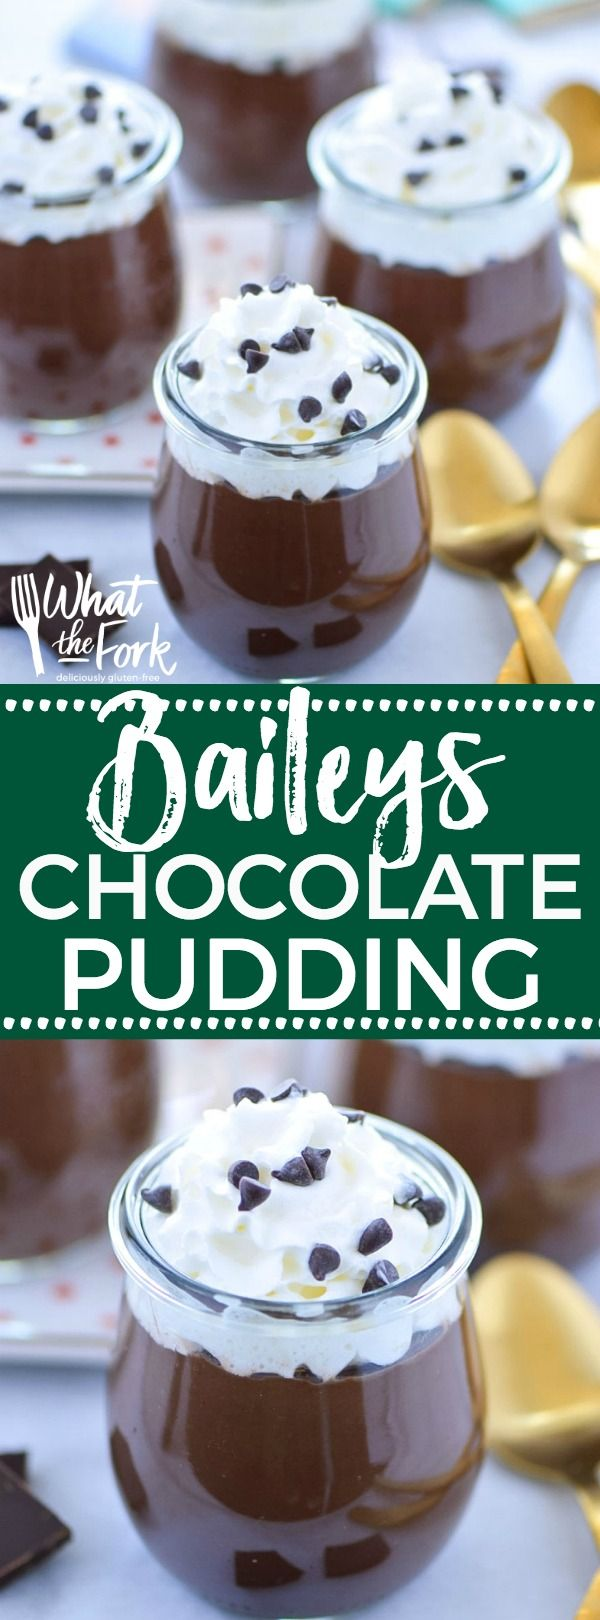 Easy recipe for Baileys Chocolate Pudding (egg free). This no-bake dessert is perfect for St. Patrick's Day. Gluten free dessert recipe from @whattheforkblog | whattheforkfoodblog.com | St. Patrick's Day recipes | easy dessert recipes | chocolate recipes